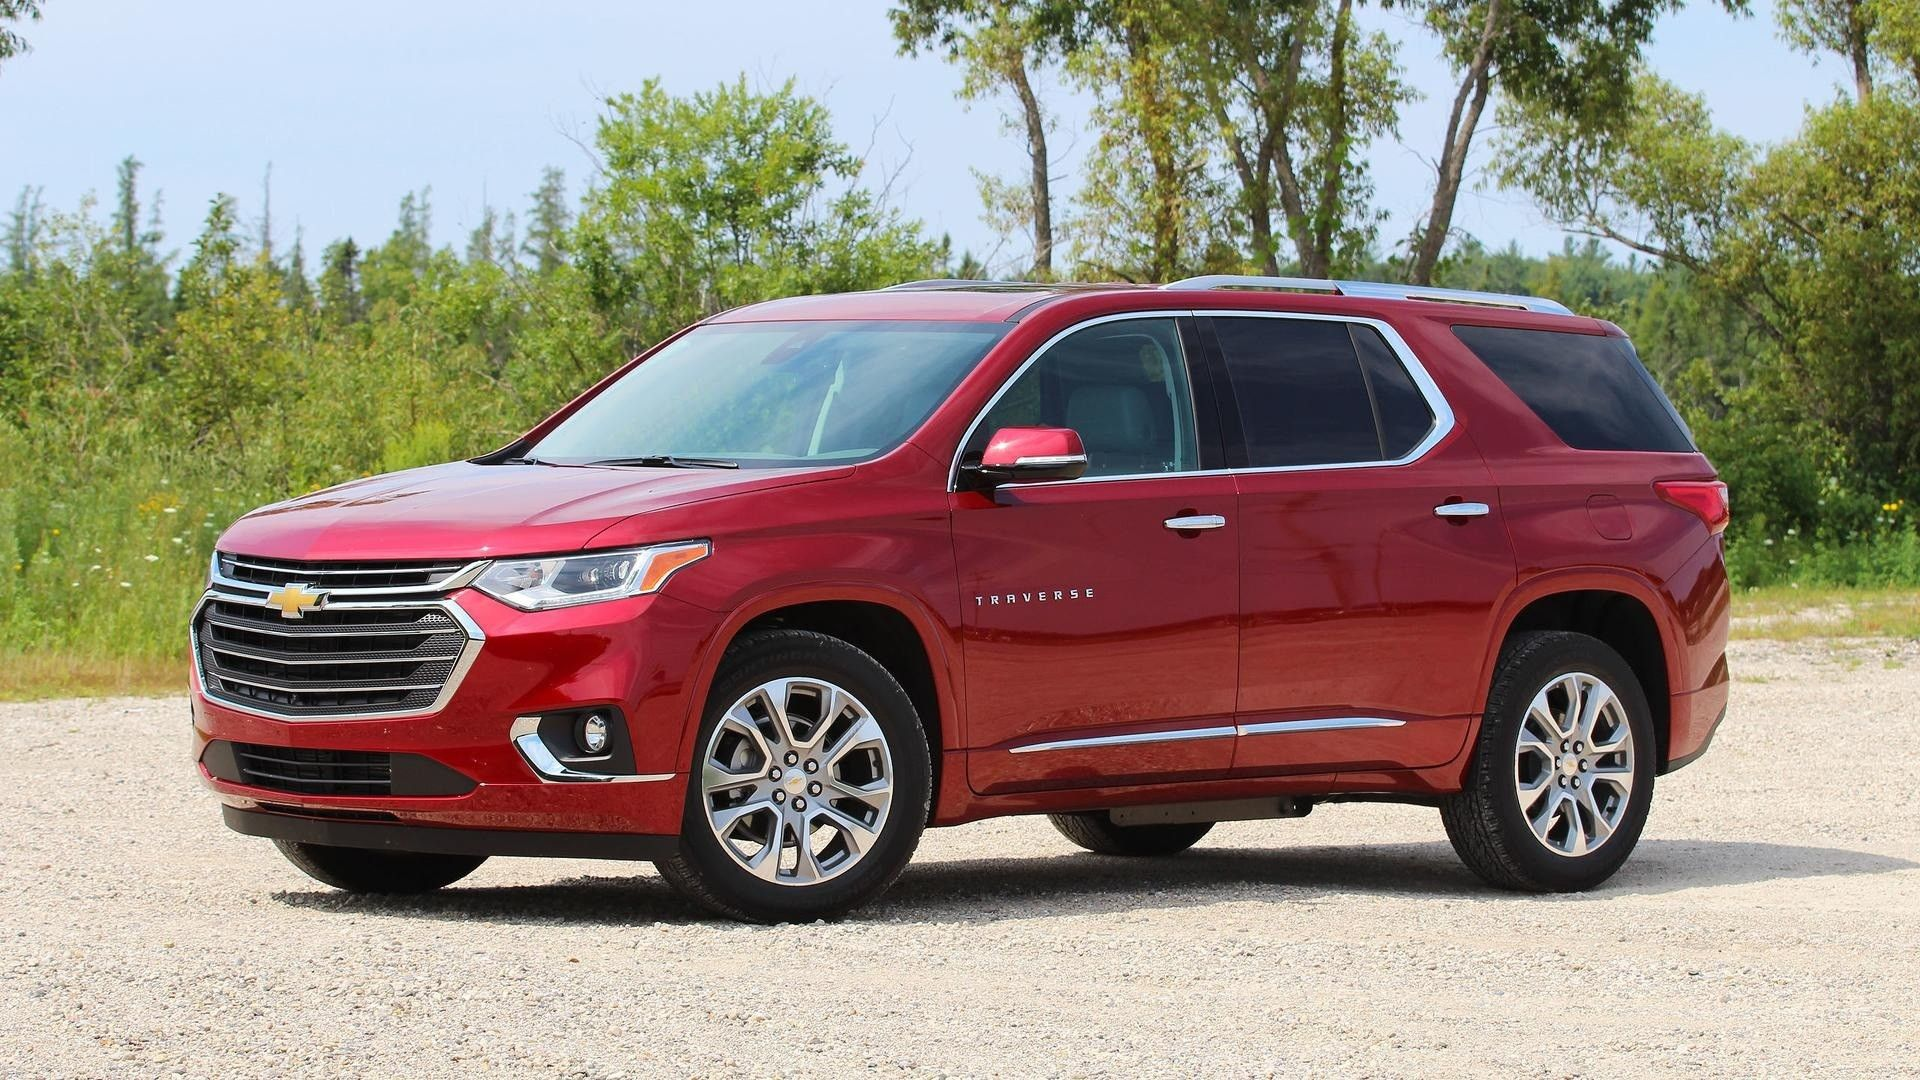 2020 Chevrolet Traverse Rs 2020 Chevrolet Traverse Rs In 2020